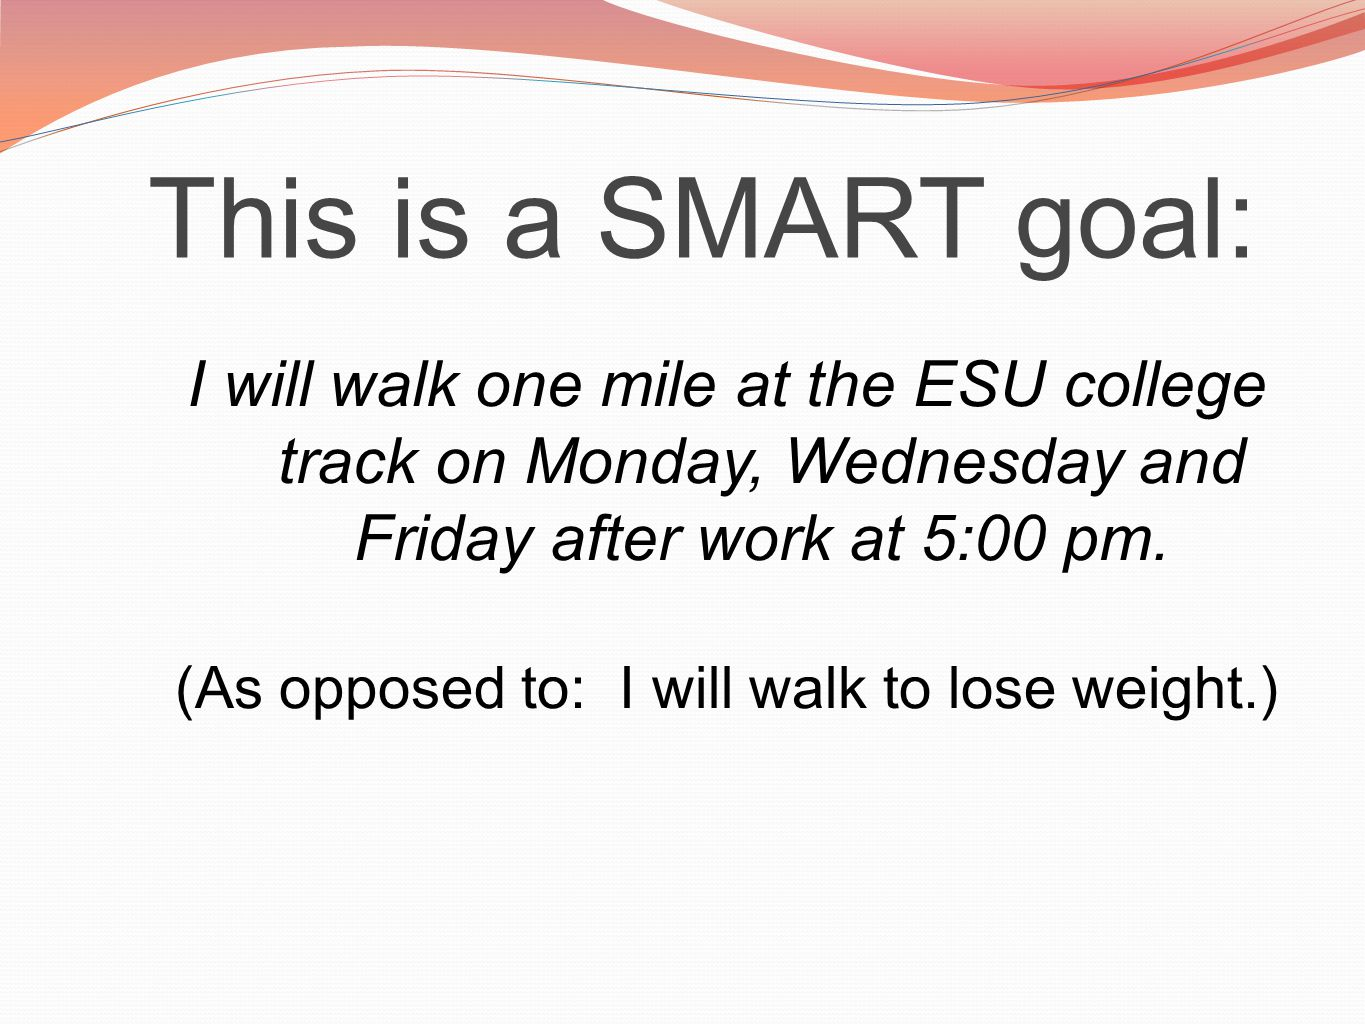 This is a SMART goal: I will walk one mile at the ESU college track on Monday, Wednesday and Friday after work at 5:00 pm.